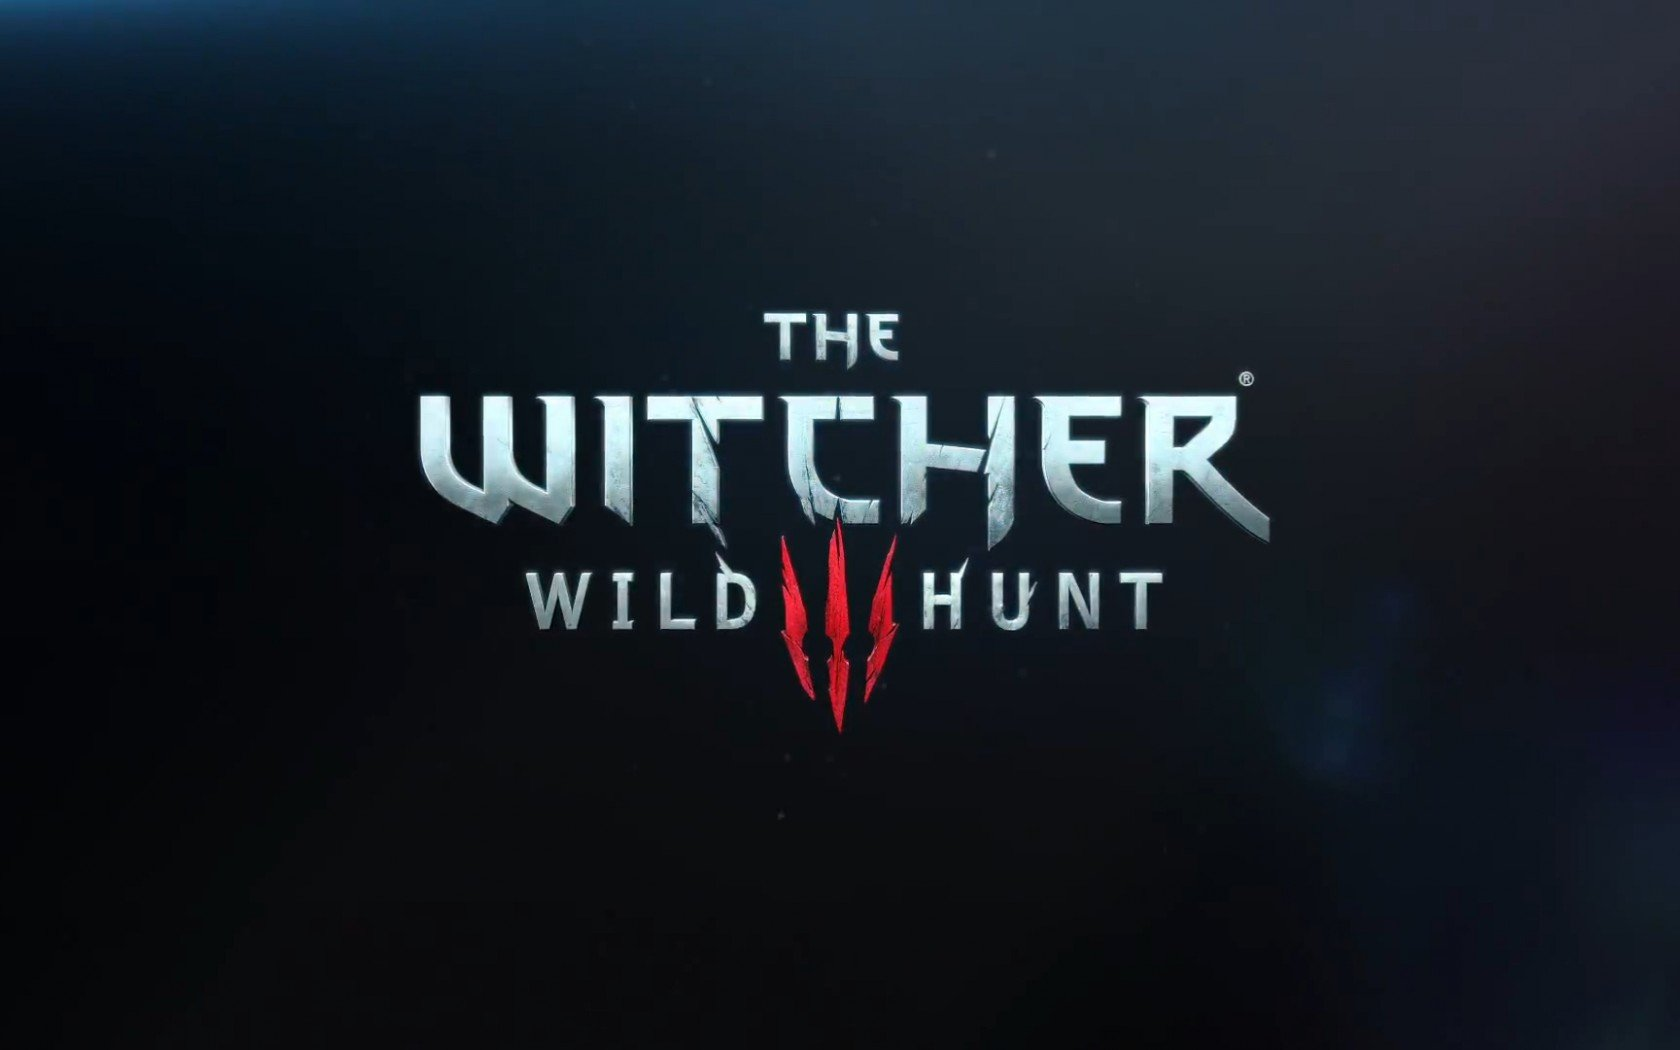 The Witcher 3: Wild Hunt ушел на золото!     CD PROJEKT RED сообщают, что игра «Ведьмак 3: Дикая Охота» ушла на золо ... - Изображение 1